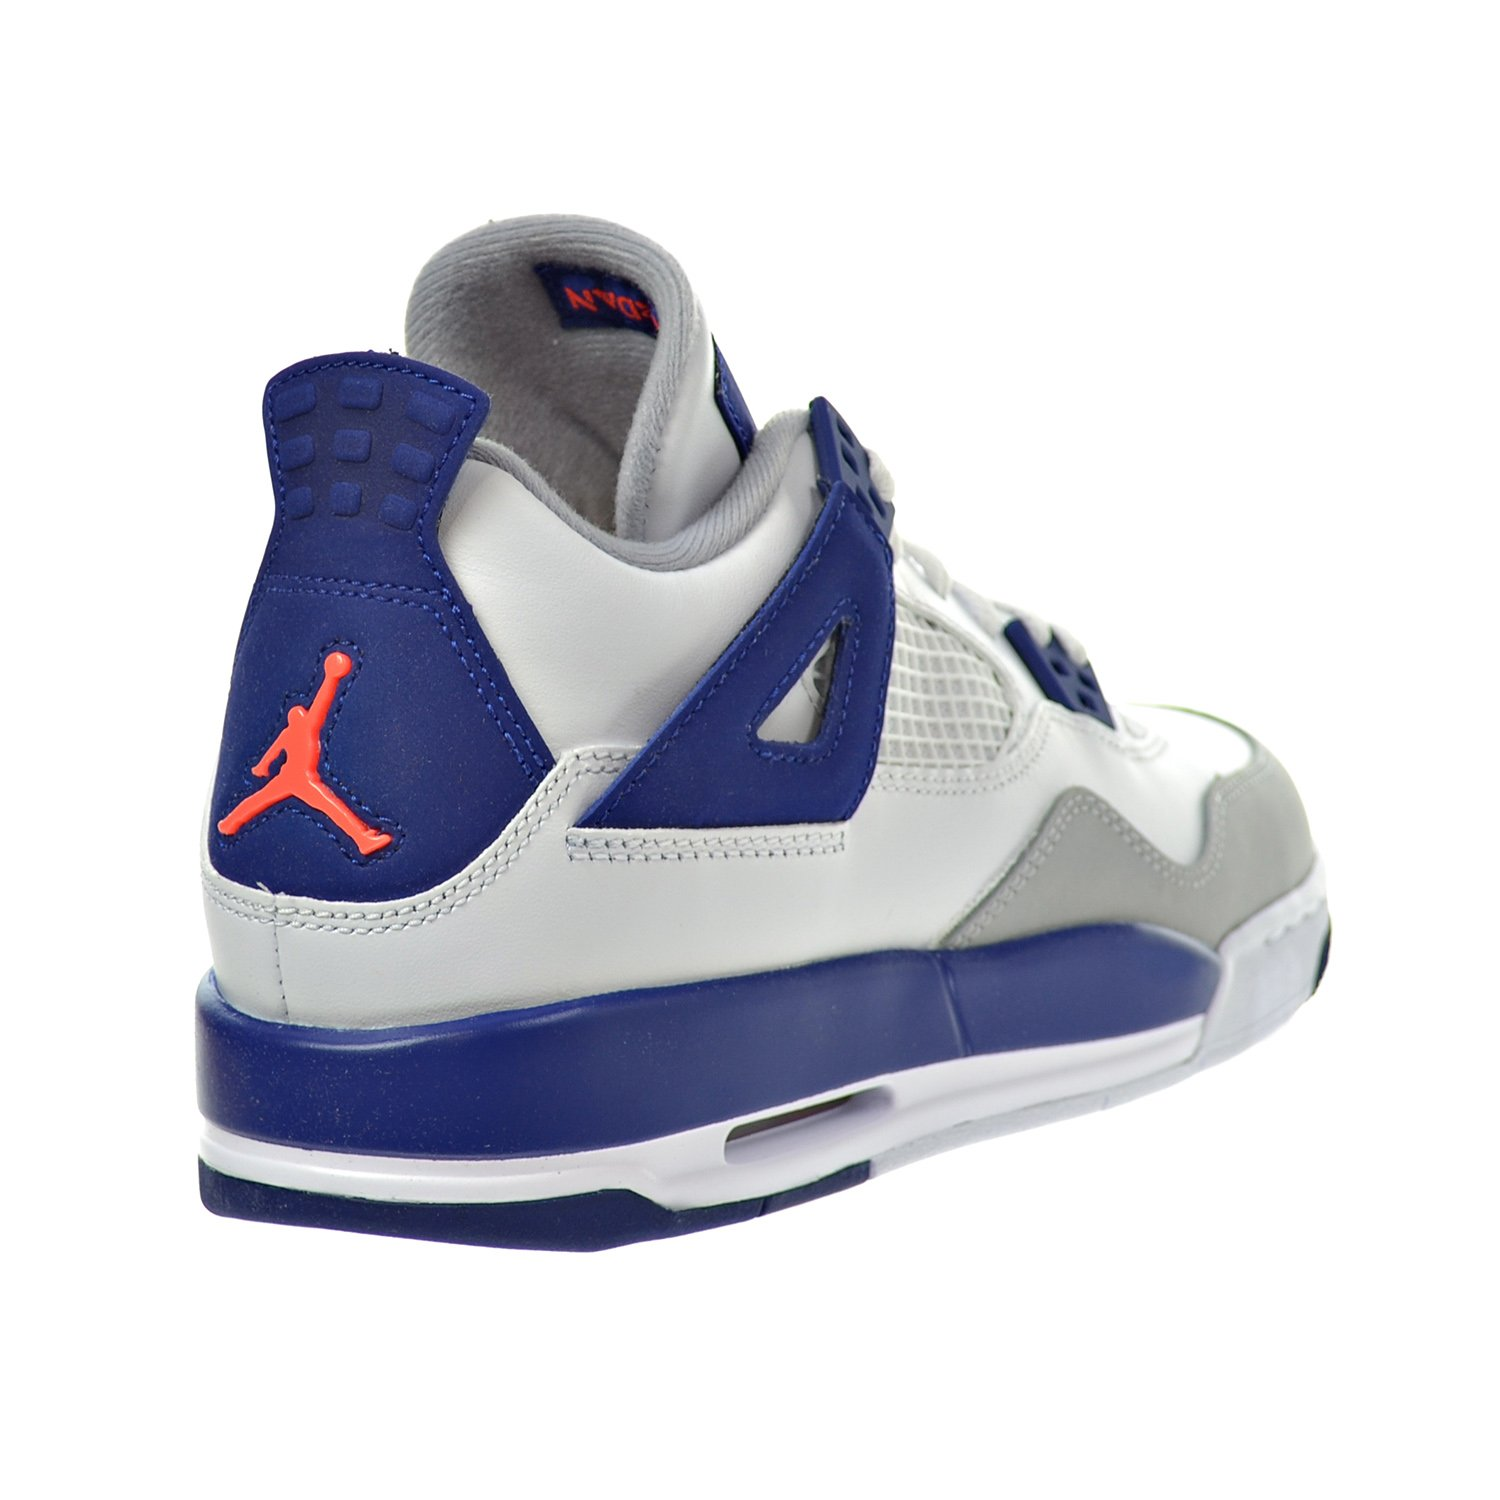 newest 99ae8 e49bf Amazon.com   Jordan Air 4 Retro GG Big Kid s Shoes White Hyper Orange Deep  Royal Blue Wolf Grey 487724-132 (6 M US)   Basketball